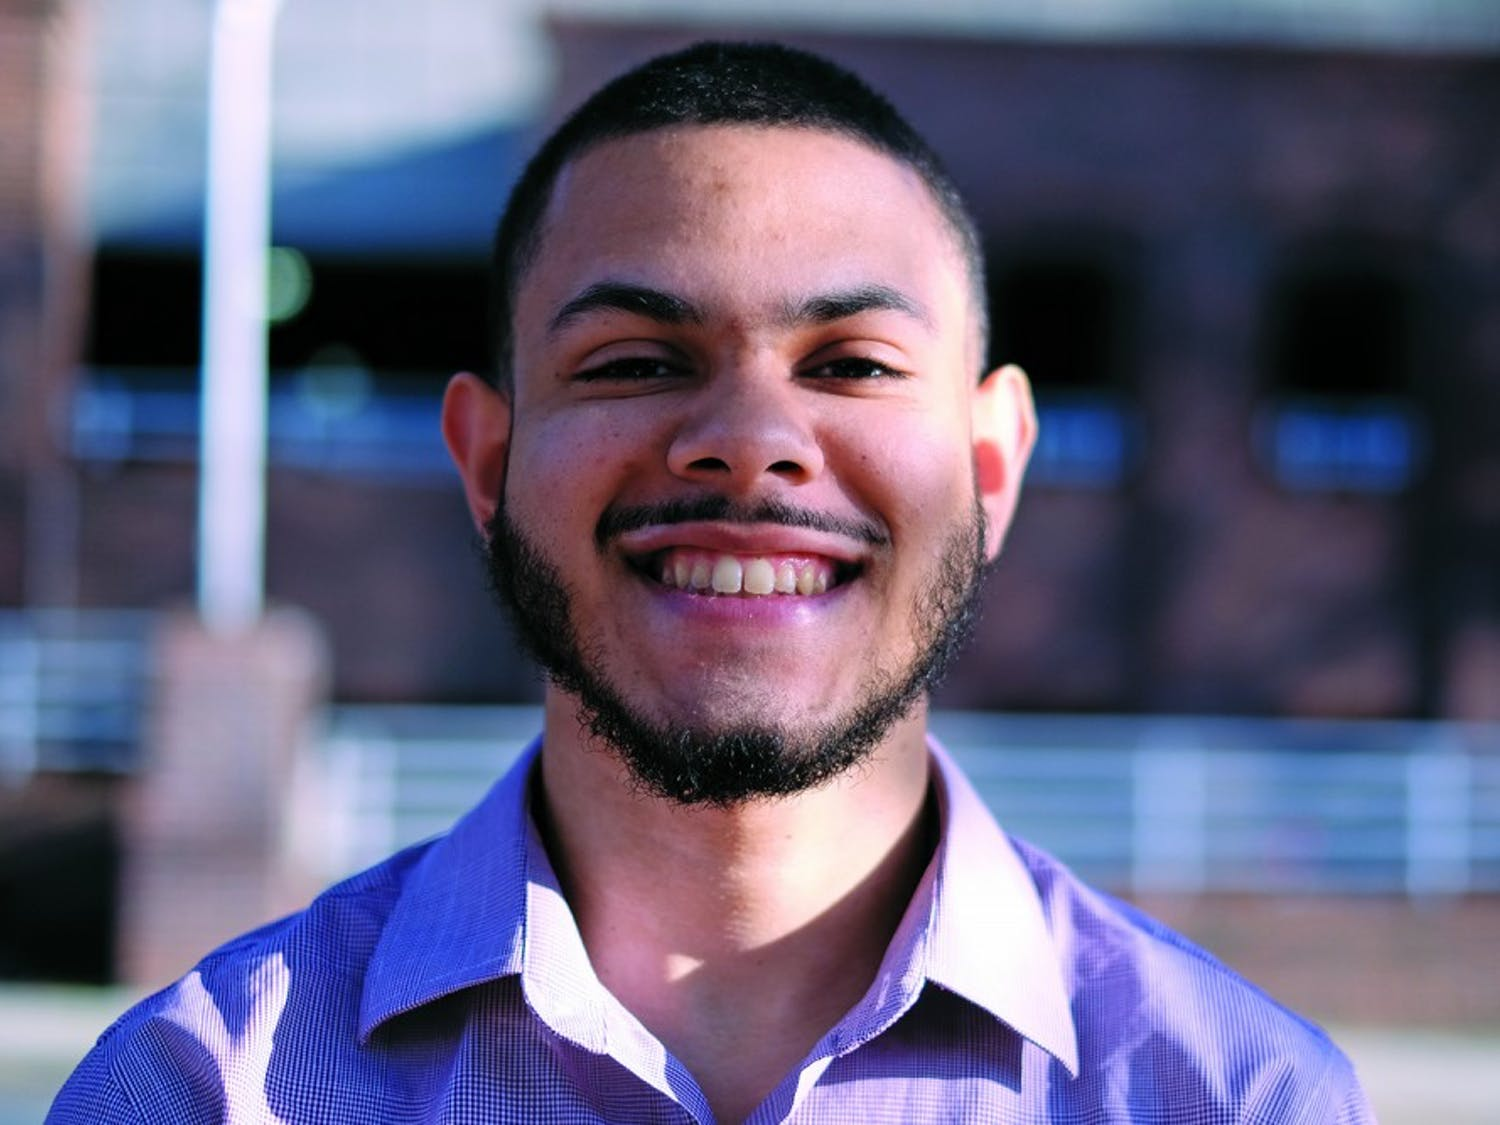 Langston Taylor is a junior from Silver Spring, Md., who loves the DTH, pop-rap playlists and underachieving sports teams.